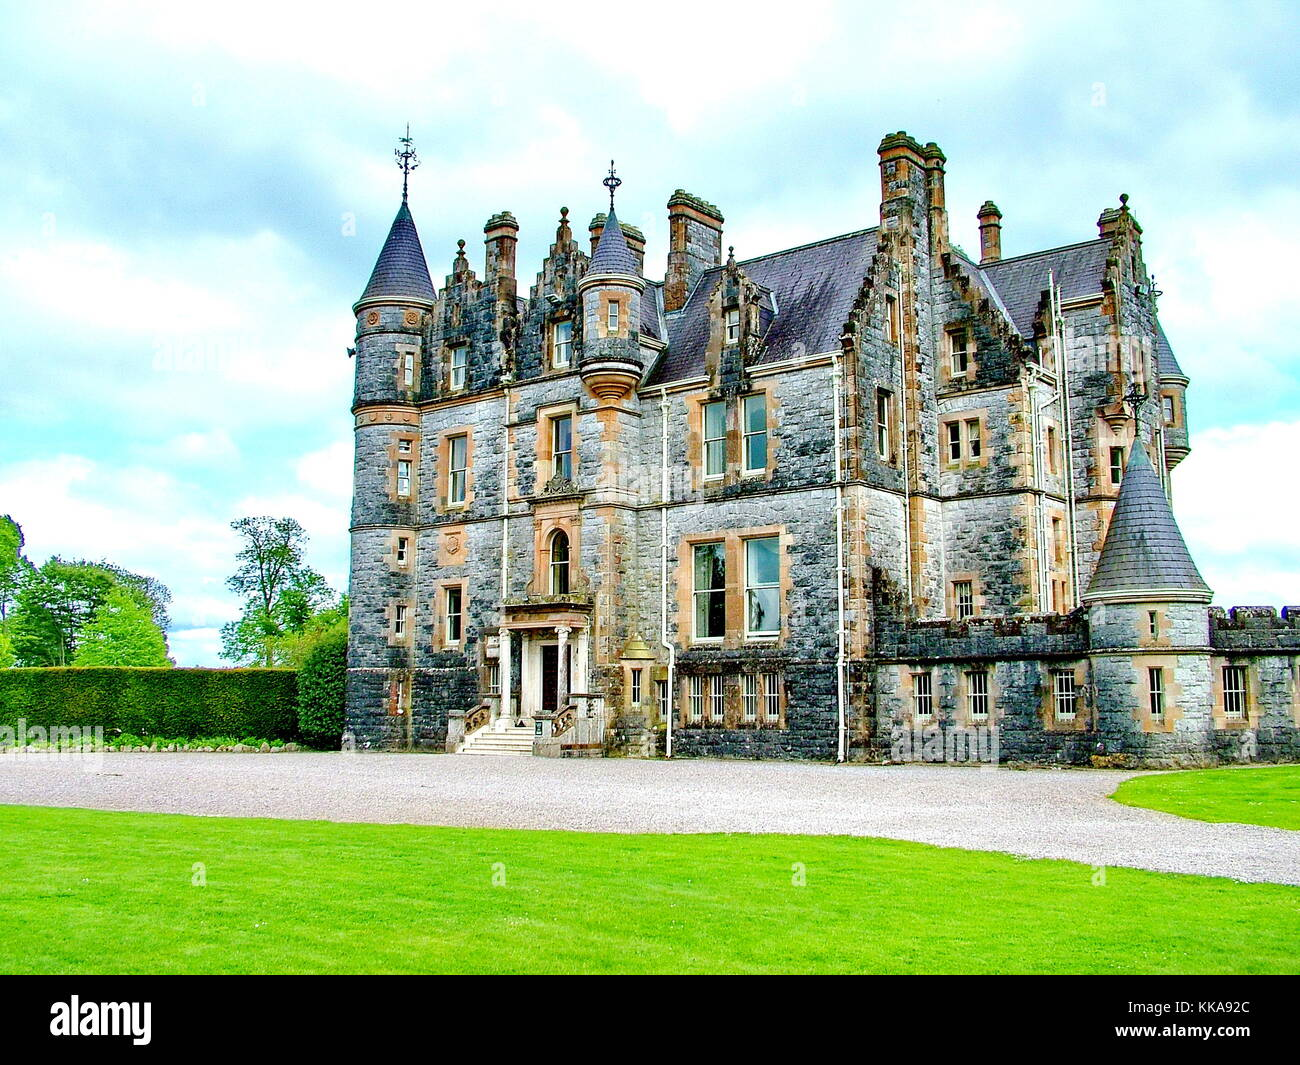 Blarney House near Blarney Castle, Co Cork, Ireland - Stock Image